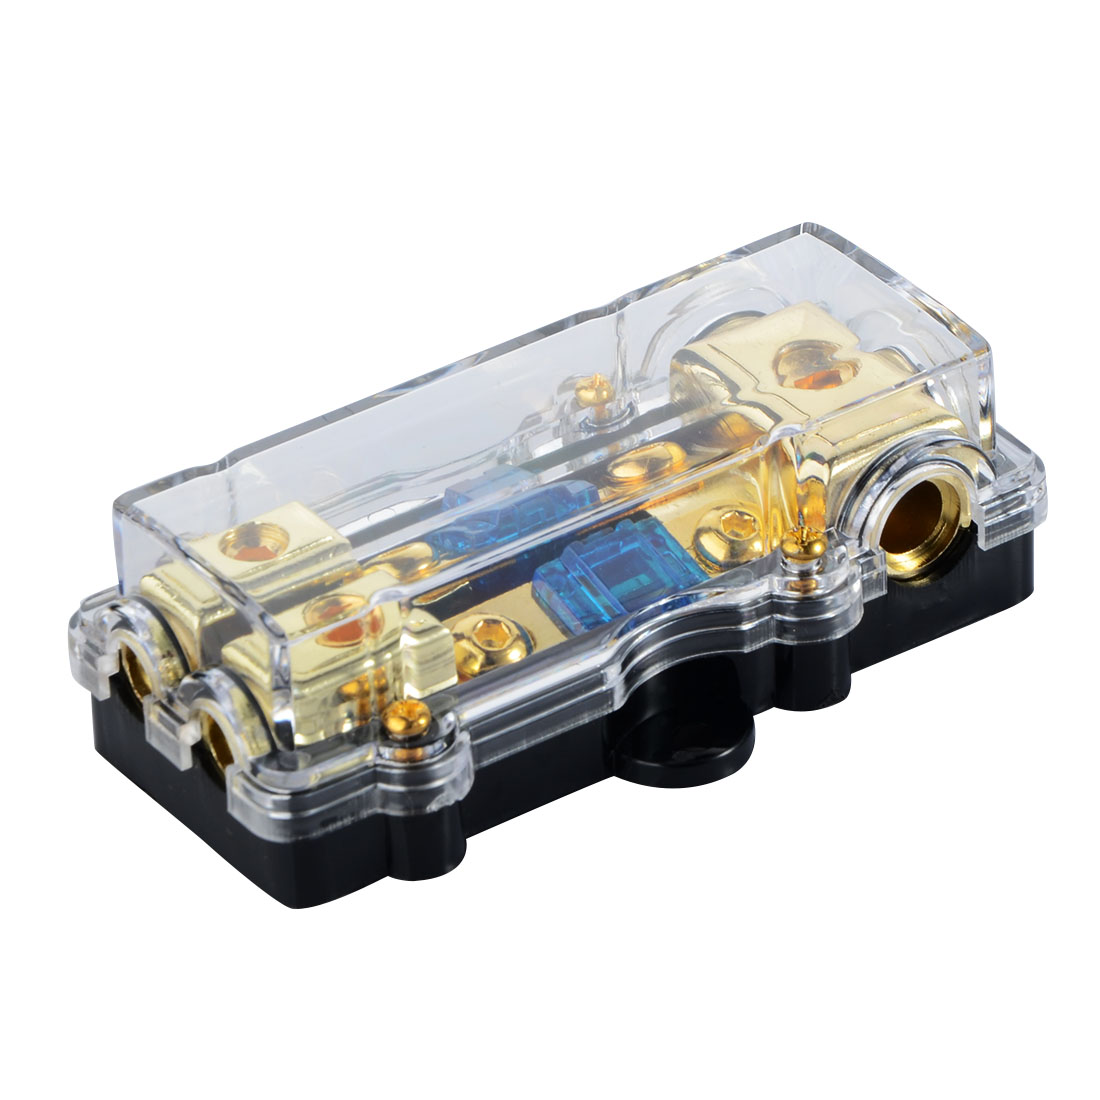 1PCS Universal Car Auto Audio Amplifier Mini 1 in 2 ways Out <font><b>60A</b></font> <font><b>Fuse</b></font> <font><b>Holder</b></font> <font><b>Fuse</b></font> Box Professional spare parts image